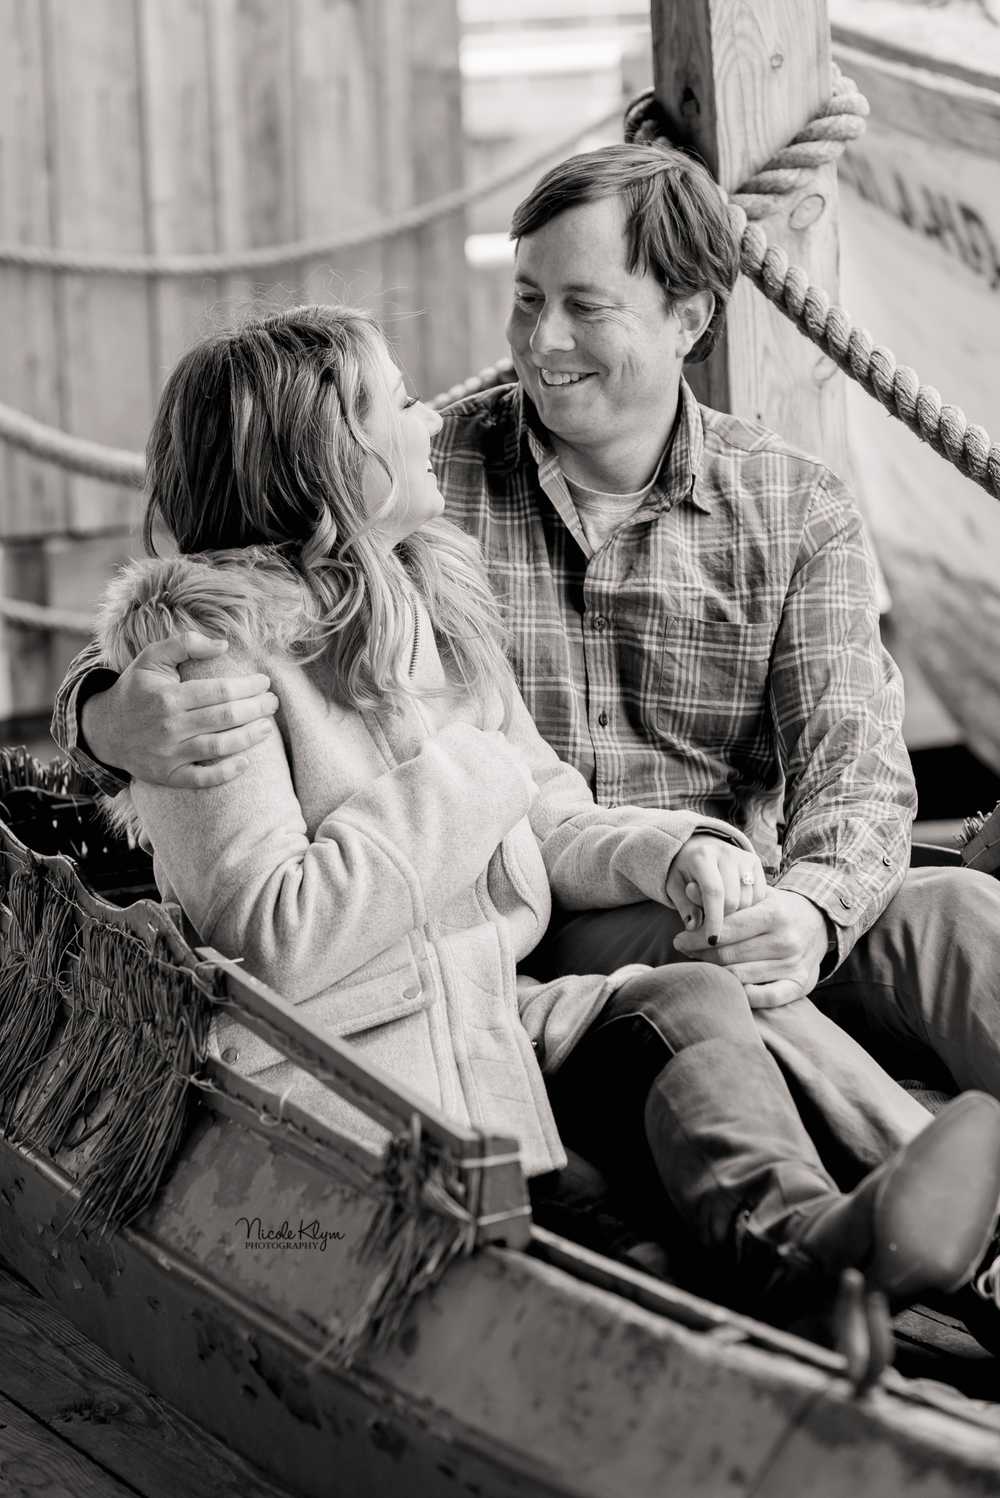 Tuckerton Seaport Engagement Photos | South Jersey Photographer | Nicole Klym Photography | www.nicoleklym.com